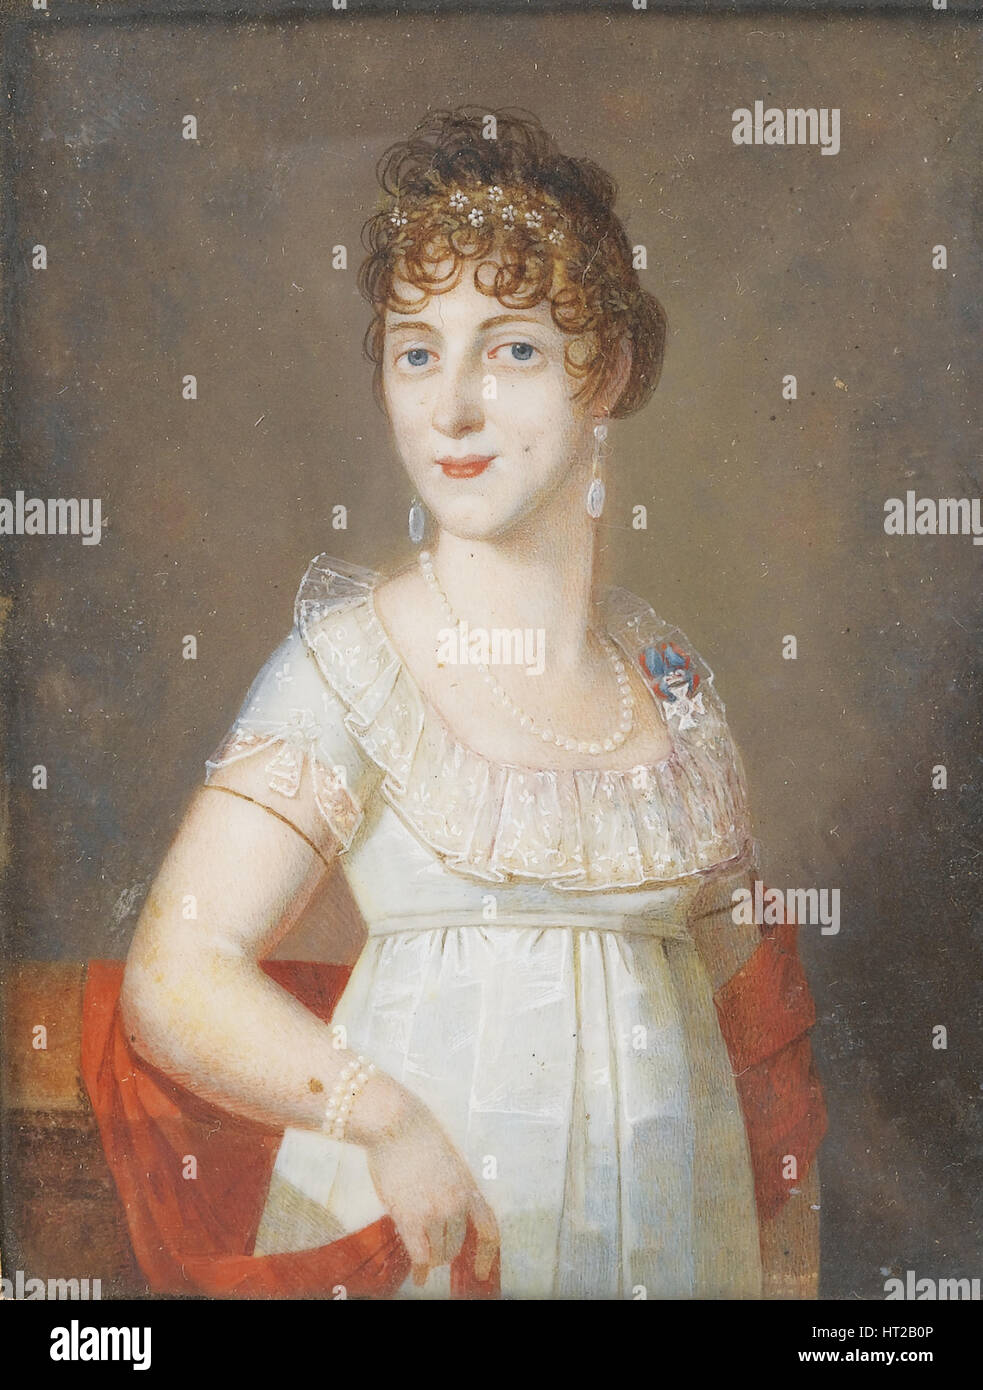 Duchess Maria Elisabeth in Bavaria (1784-1849), Princess of Wagram, c. 1810. Artist: Anonymous - Stock Image